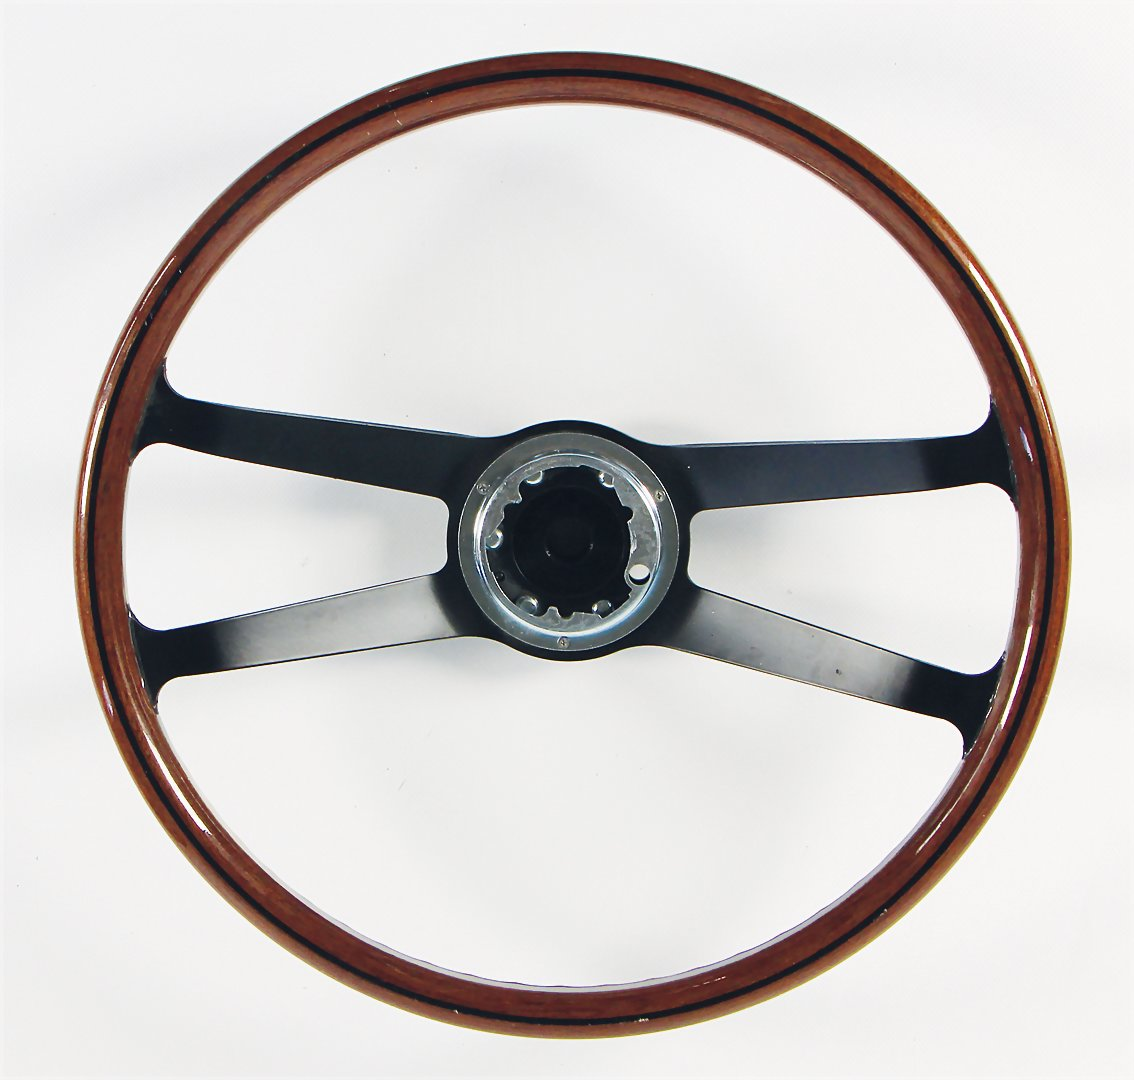 PORSCHE Porsche 911 wood steering wheel 1964/65